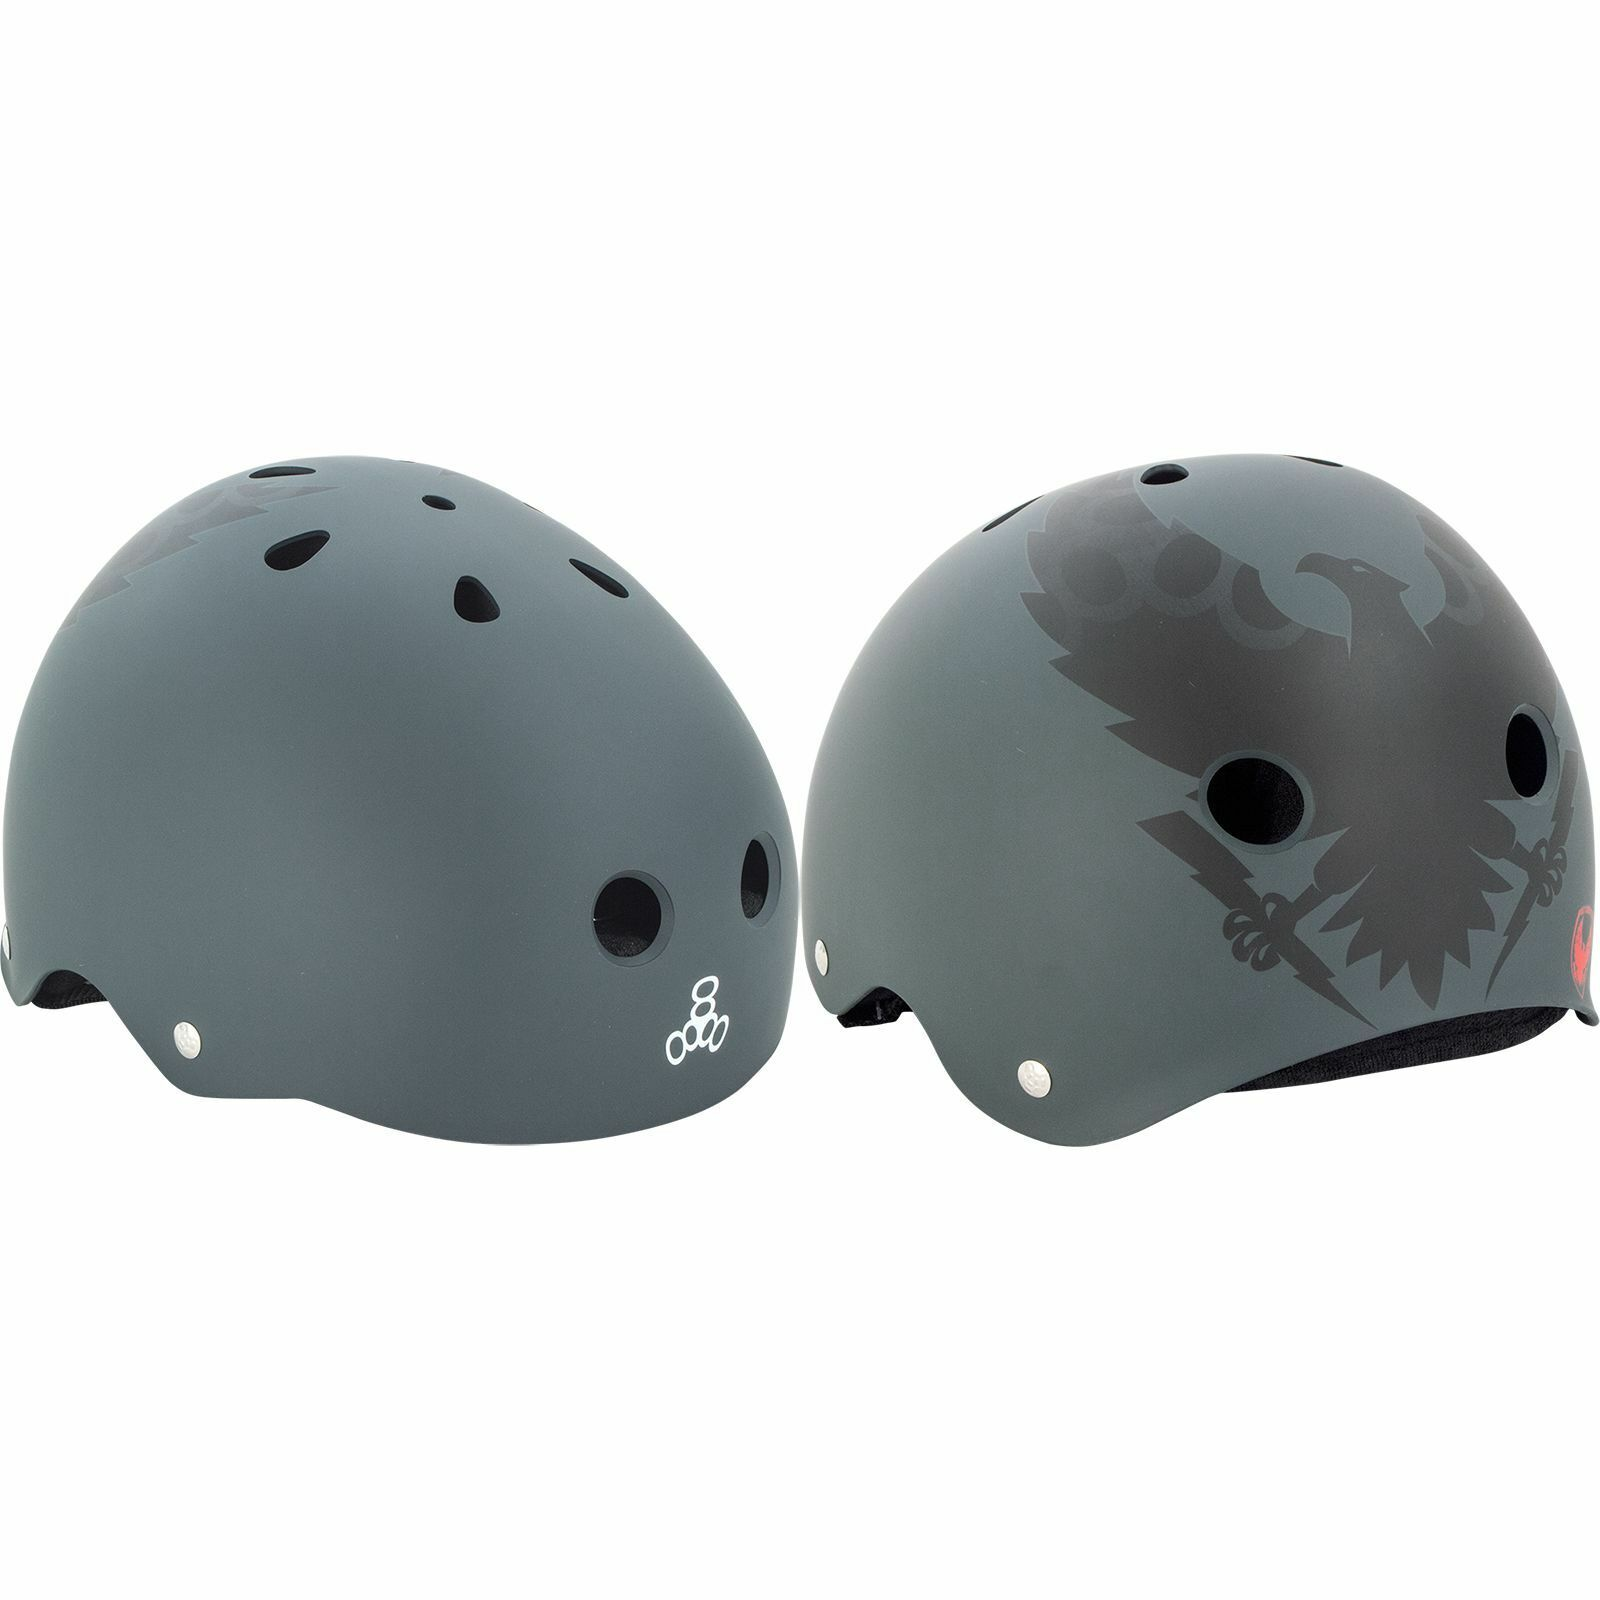 Triple 8 Helmet Vallely Get Used To It - LARGE Charcoal